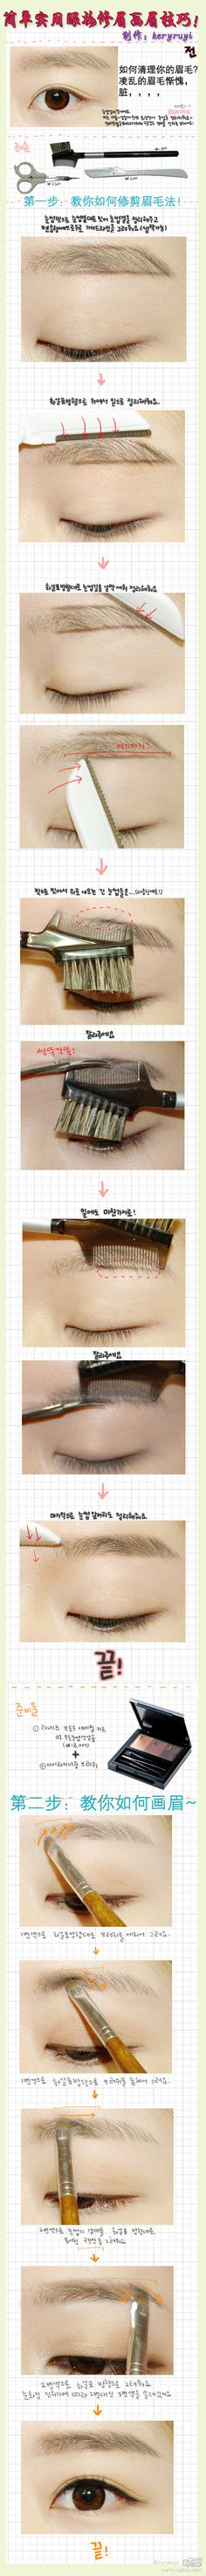 korean eyebrow tutorial.